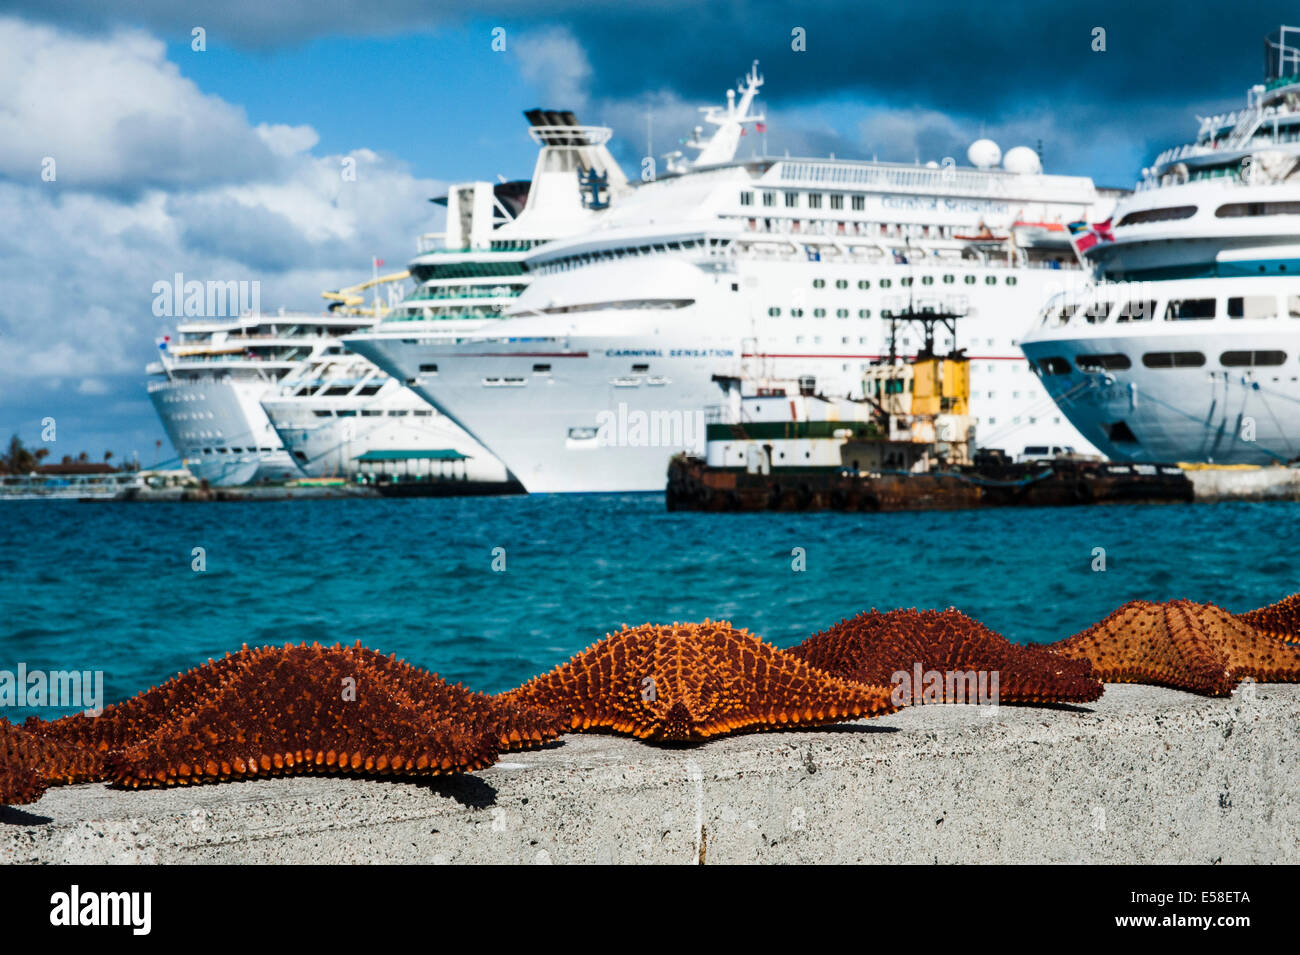 Starfish on wall in front of docked cruise ships - Stock Image